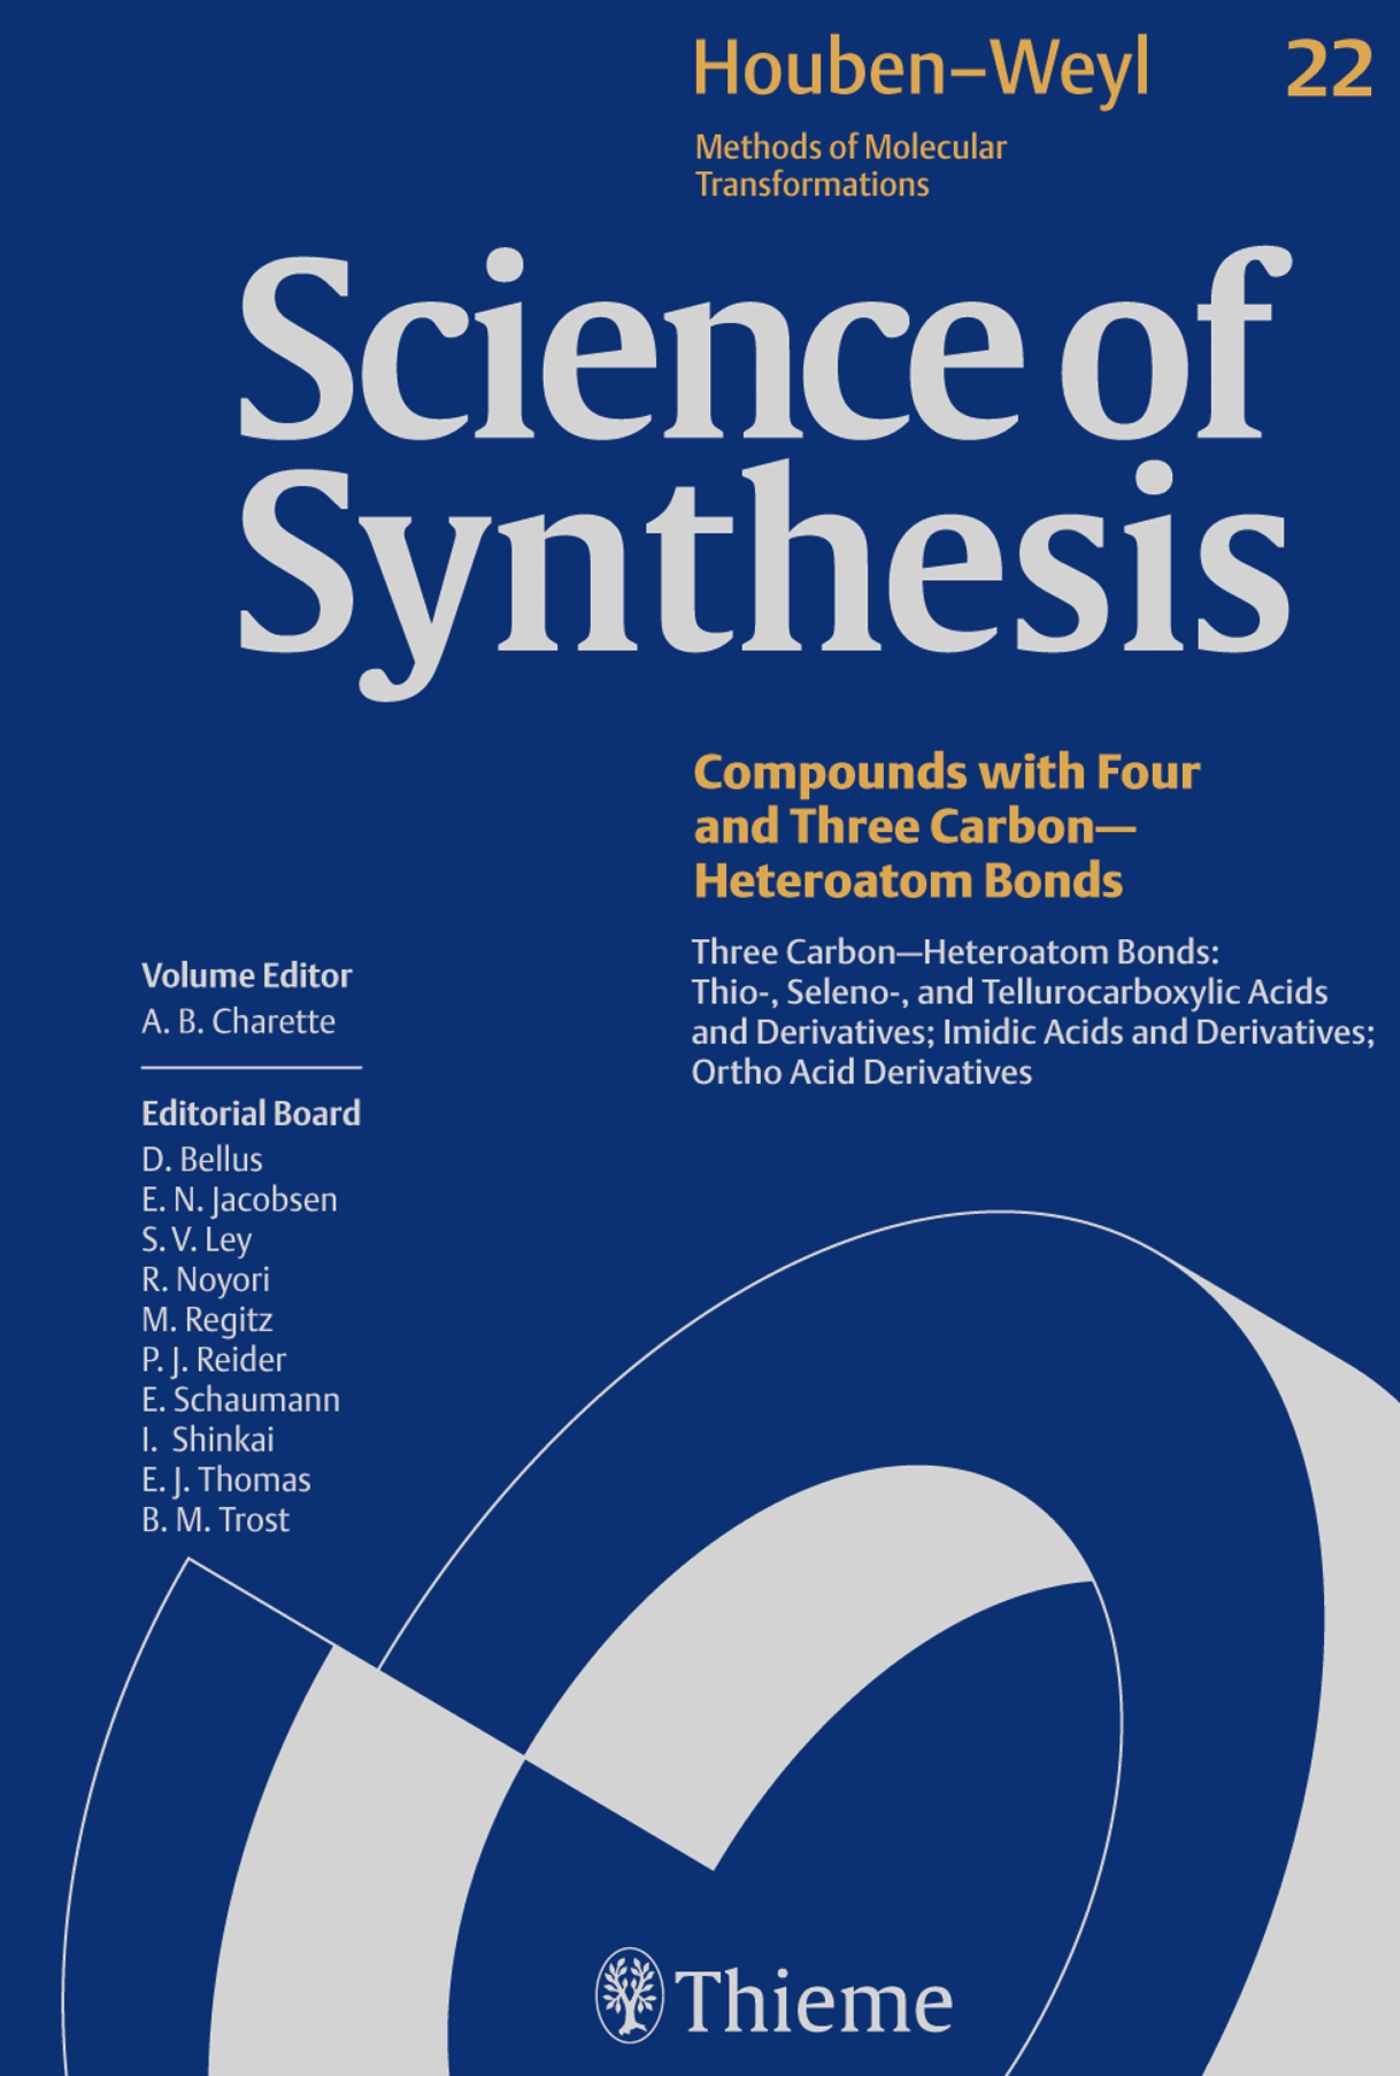 Science of Synthesis: Houben-Weyl Methods of Molecular Transformations  Vol. 22